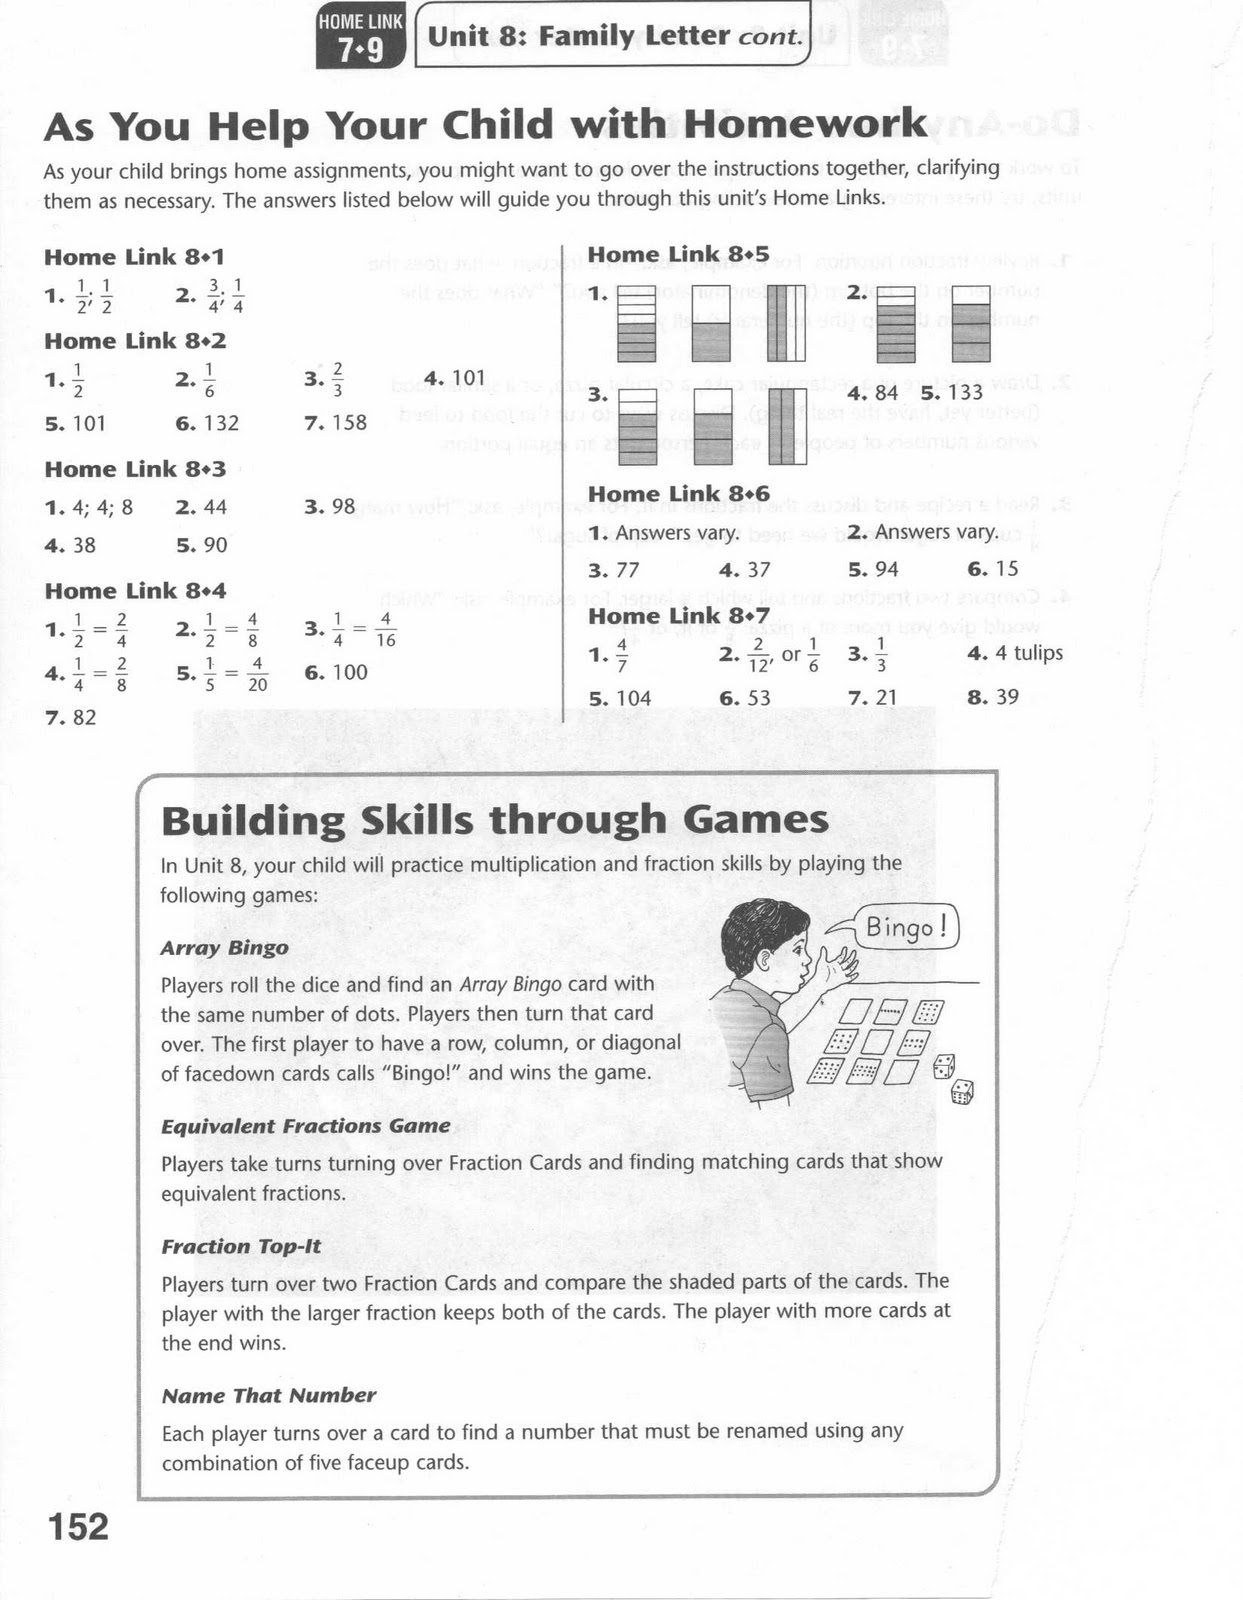 Printables Did You Hear About Math Worksheet i need help with math valleunica myftp org did you hear about worksheet answers